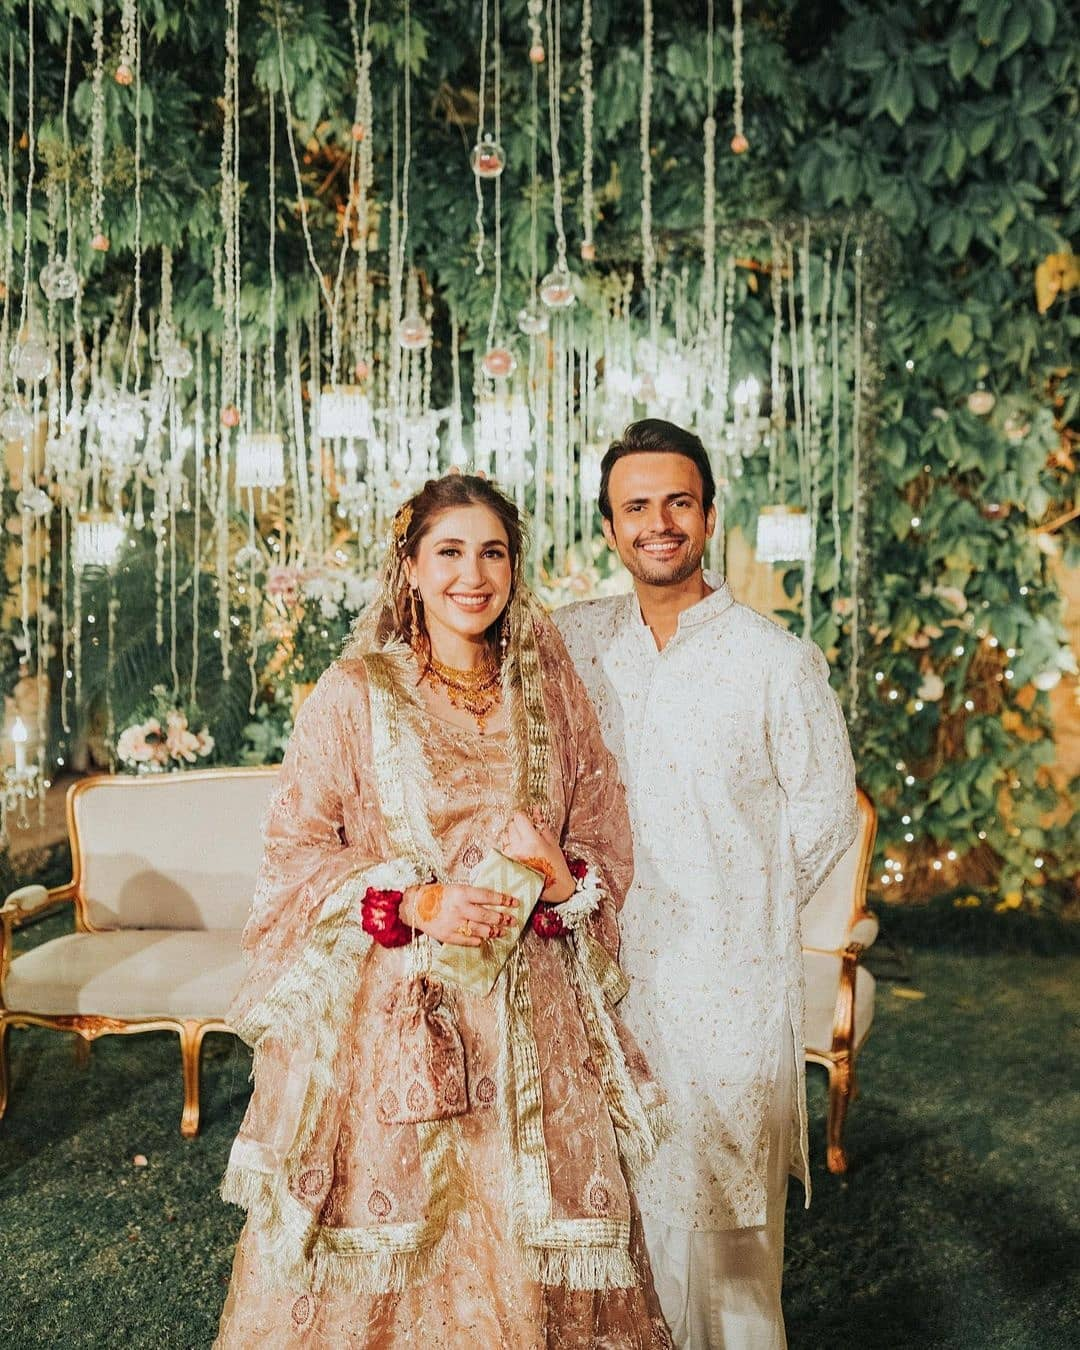 """Hold on to your heart as we have got big news from all-time favourite and talented actor Usman Mukhtar as he takes social media by storm. The Anaa actor has finally left his fans in surprise by tying the knot. As soon as the pictures went viral on social media, fans went crazy to find out who is the lucky one to whom Usman has hooked for life. So, here we have got the details and pictures!  Usman Mukhtar Leaves His Fans Surprised By Tying The Knot!  Heartthrob actor Usman Mukhtar has finally tied the knot while leaving many female fans heartbroken and the rest surprised in happiness. He is well-known for his role as Altamash in the drama serial Anaa in which he starred opposite Naimal Khawar. Let's check out these adorable clicks from the wedding event!         While posting the pictures on social media, Usman penned a heartwarming note:  """"ZUNAIRA INAM KHAN. THANK YOU FOR MAKING ME THE LUCKIEST MAN ON EARTH. I HAVEN'T FELT SUCH HAPPINESS IN A VERY LONG TIME. YOU'VE STOOD BY ME IN THE MOMENTS I WAS DOWN AND AMPLIFIED THE HAPPY MOMENTS. BEEN MY ROCK AND MY SUPPORT. I AM BLESSED.  DEAR WORLD - I MARRIED THIS AMAZING WOMAN TODAY IN A SMALL SOCIALLY DISTANT GATHERING. OUR BIG DAY WAS SUPPOSED TO BE ON 2ND APRIL BUT DUE TO THE LOCKDOWN RESTRICTIONS FROM 1ST APRIL WE HAD TO PULL IT BACK. WE WERE TESTED AND FOLLOWED SOPS. WE BOTH NEED YOUR DUAS AND BLESSINGS.#NIKKAH""""  Those who attended the function were tested and the SOPs were strictly followed throughout it.  An Introduction To Zunaira Inam Khan!   According to the latest updates, Usman Mukhtar's better half Zunaira Inam Khan is a super high achiever. She is a double Masters in International Law & International Relations from the University of Western Sydney. Moreover, Zunaira is an Associate Research Analyst at the Institute of Regional Studies.  We wish the beautiful couple a wonderful life ahead. Want to add something to this write-up? Don't forget to share your valuable feedback with us!"""